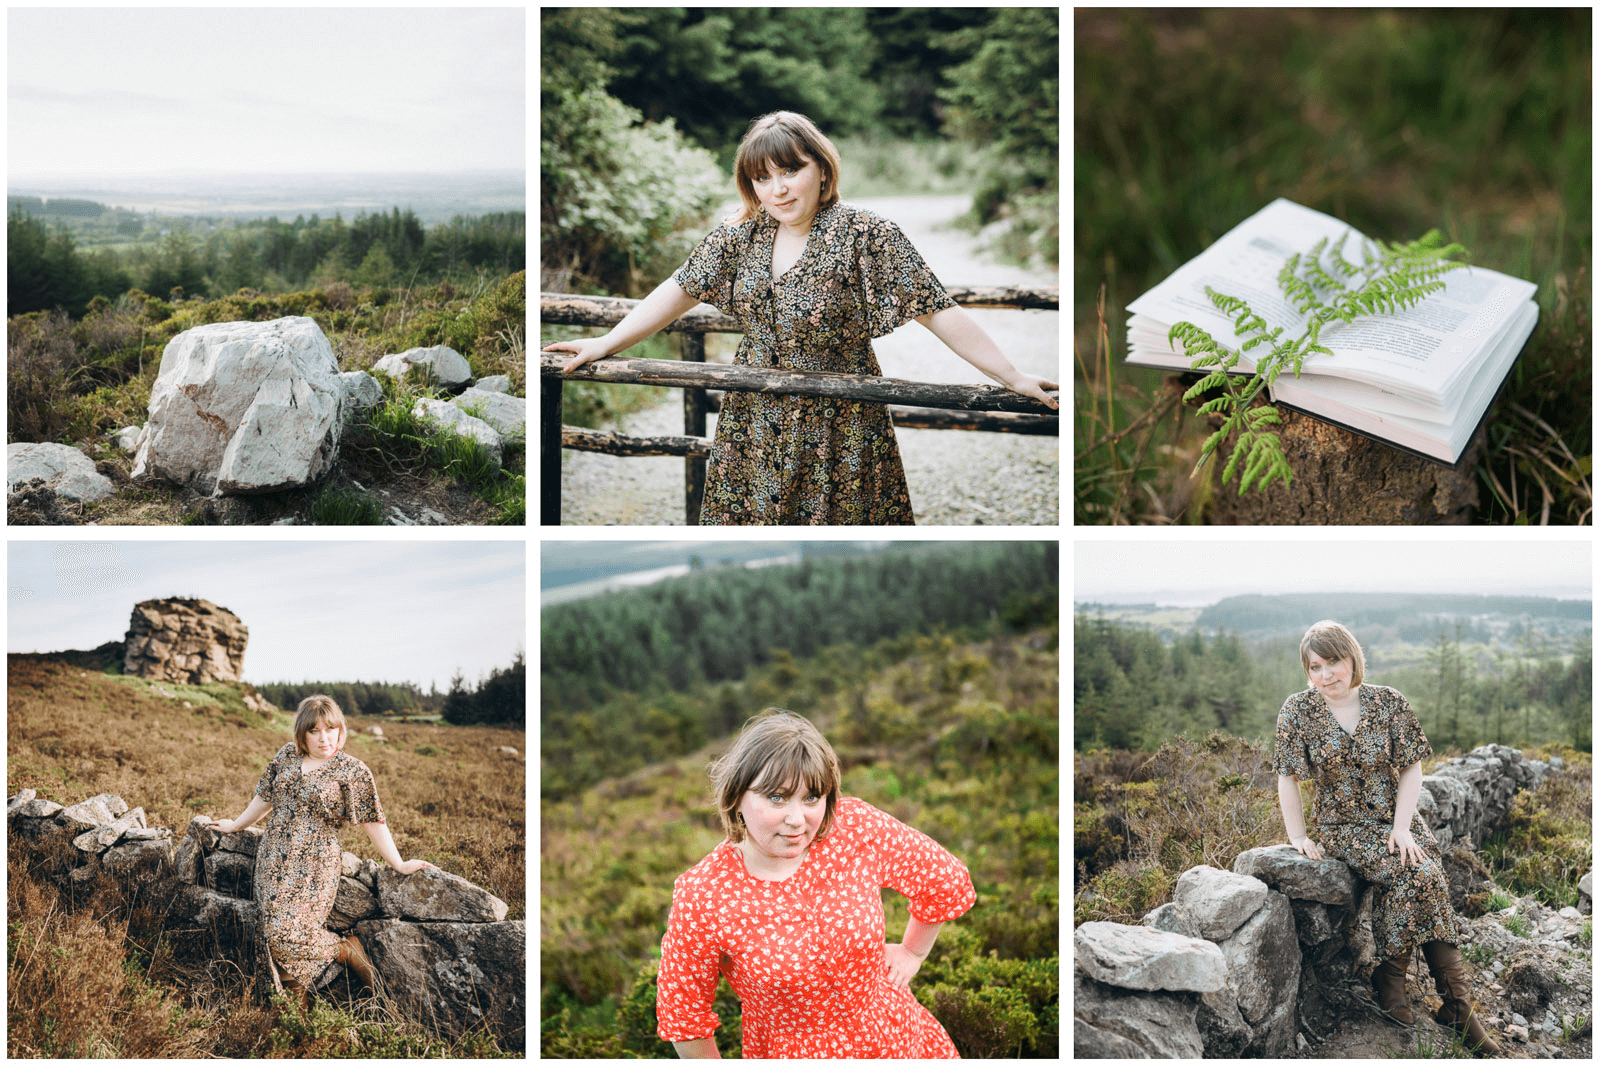 Tamara in the forest posing for Instagram photo session